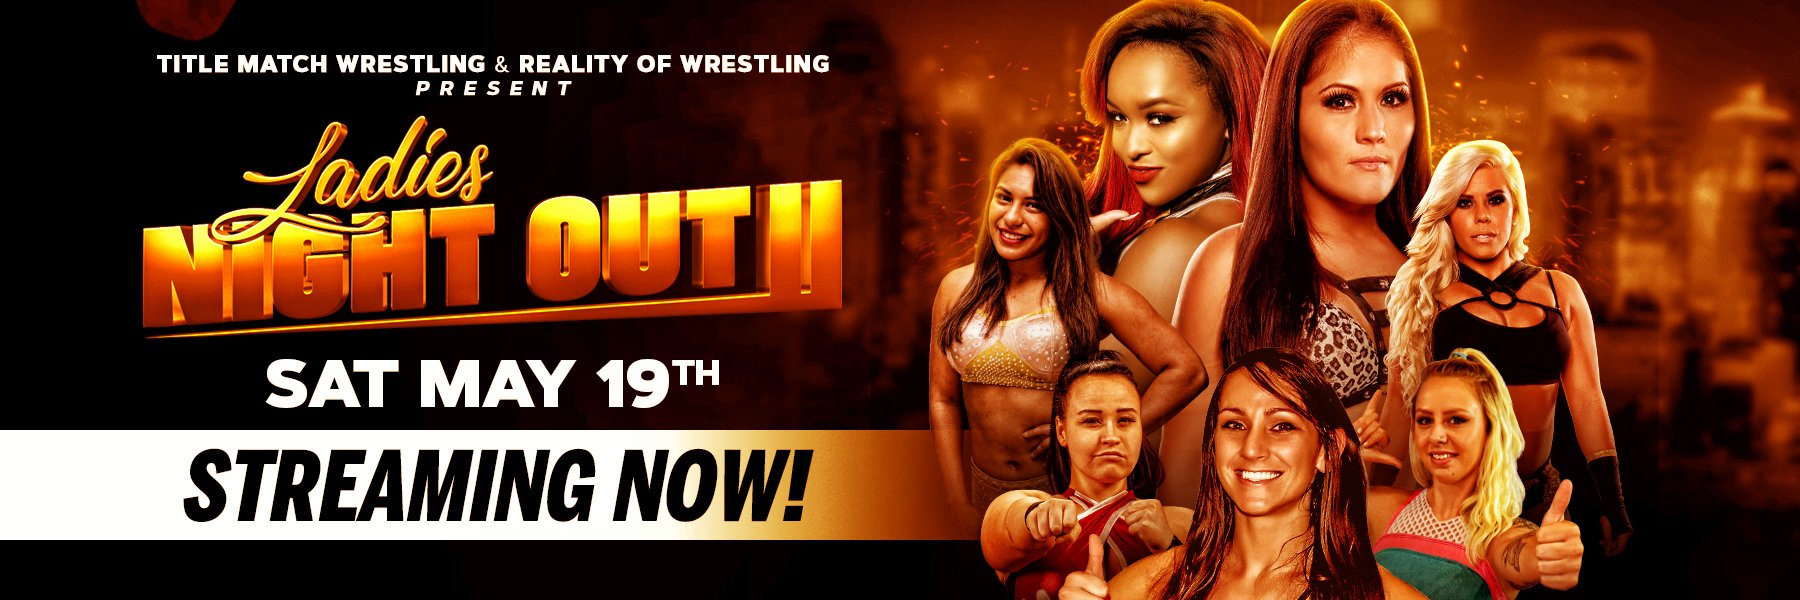 Streaming NOW: Ladies Night Out II feat: Ivelisse vs Kiera Hogan & more!